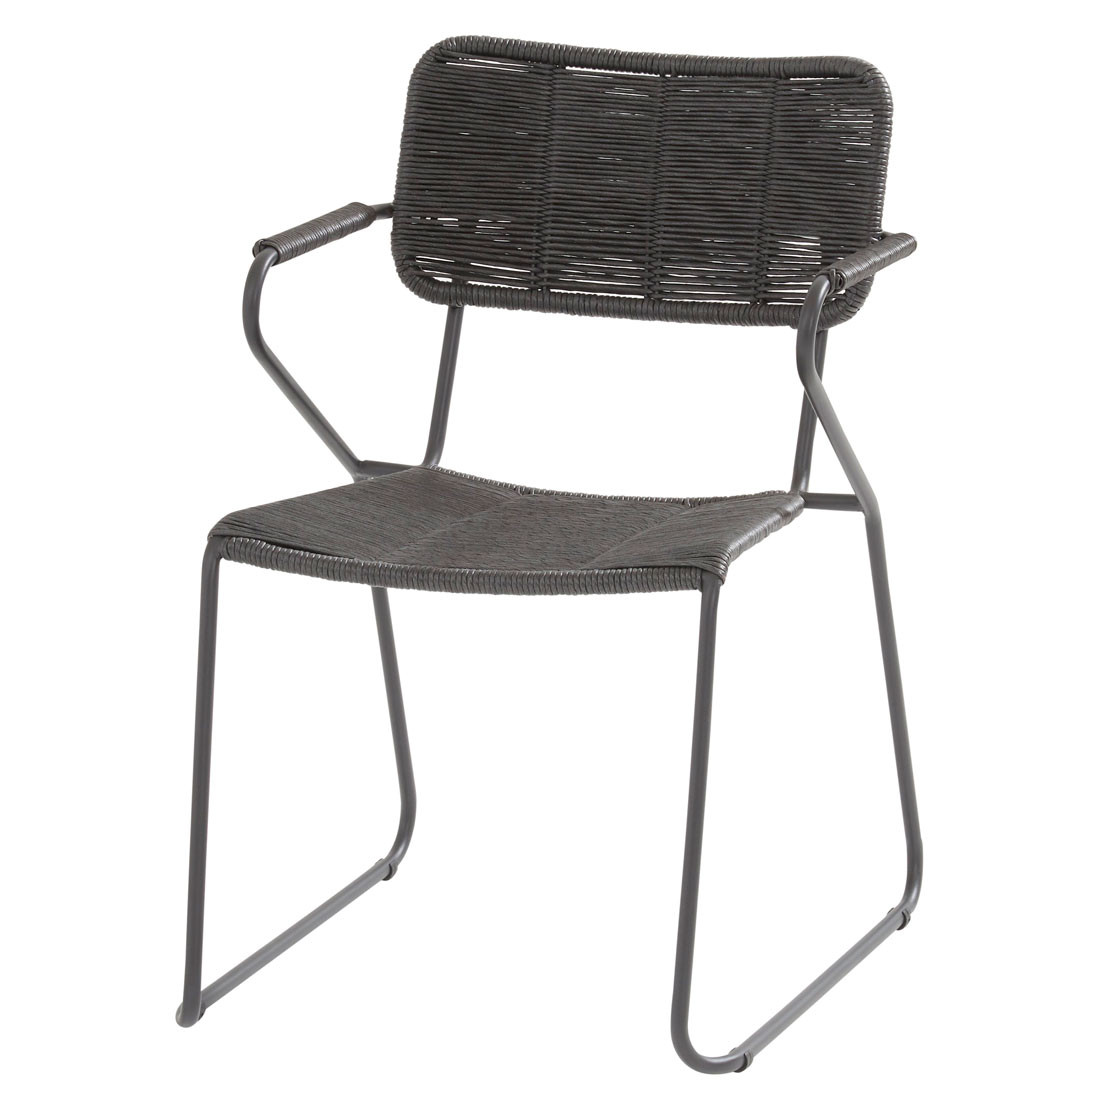 Swing stacking chair Anthracite